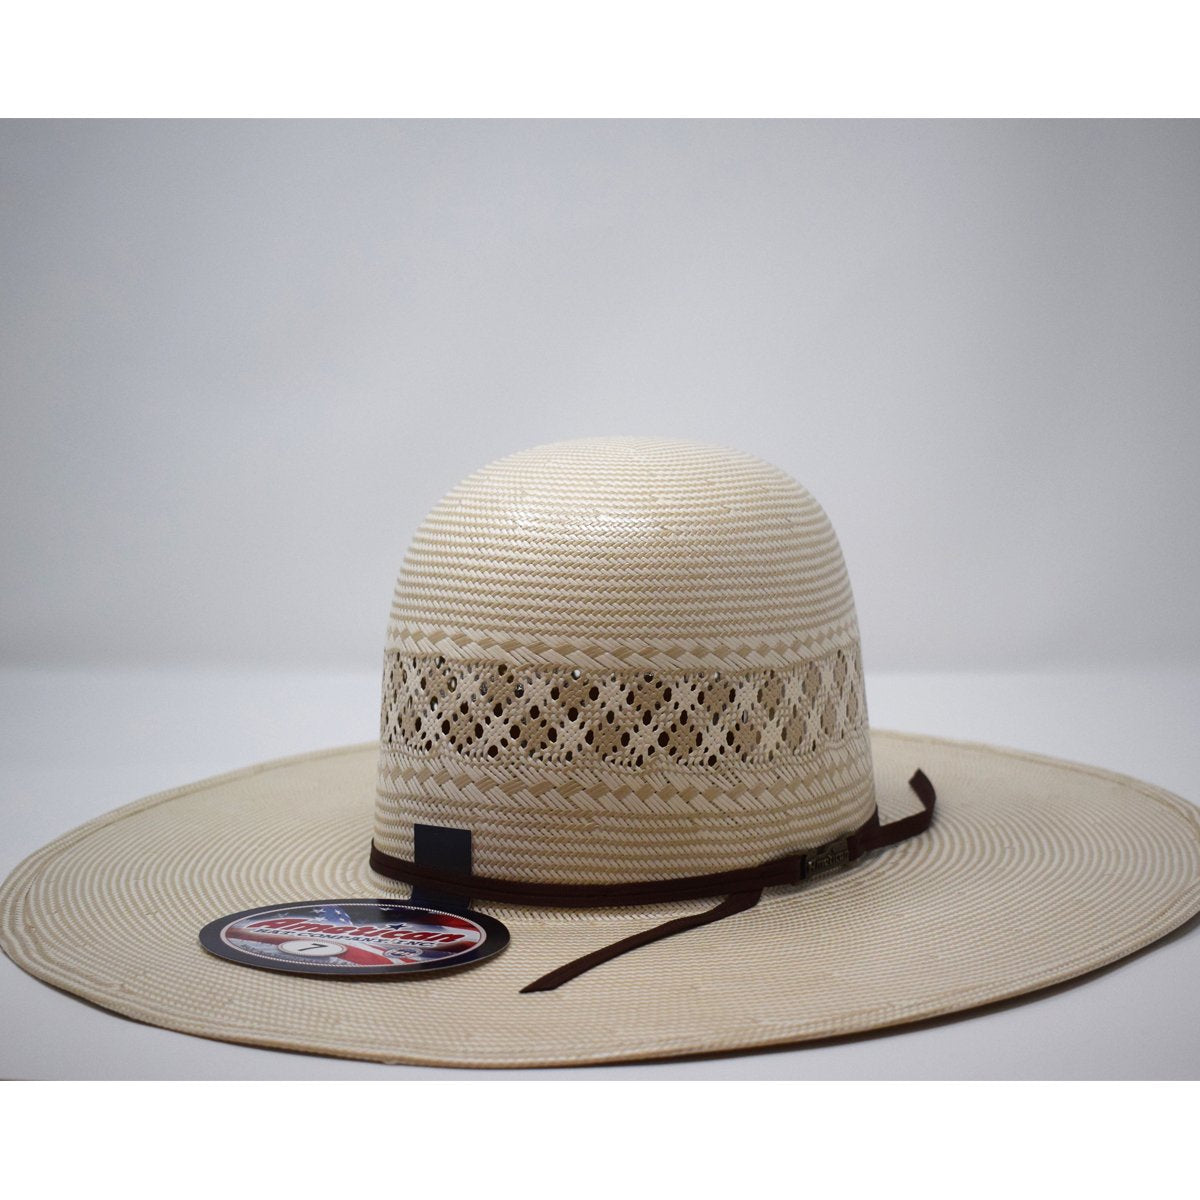 American Hat Co. Western Straw Hat